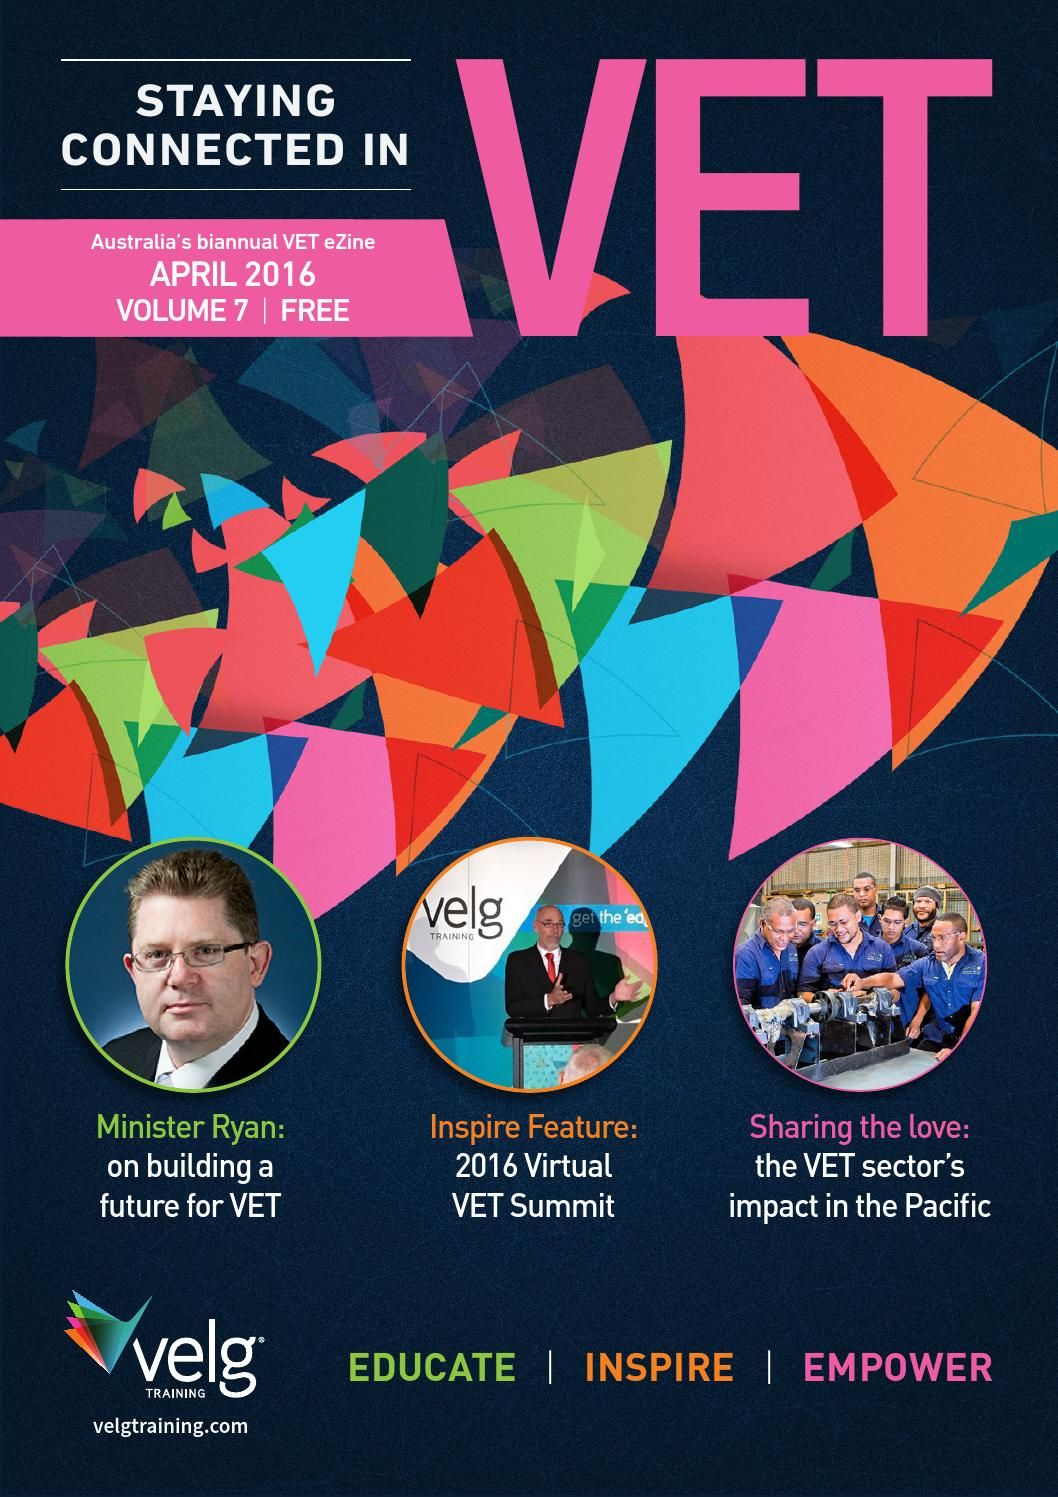 Velg Training has published the seventh edition of our biannual VET eZine! Featuring articles to Educate, Inspire and Empower readers from the new Minister for Vocational Education and Skills, PwC's Skills for Australia, the Australian Skills Quality Authority and industry experts across Australia.